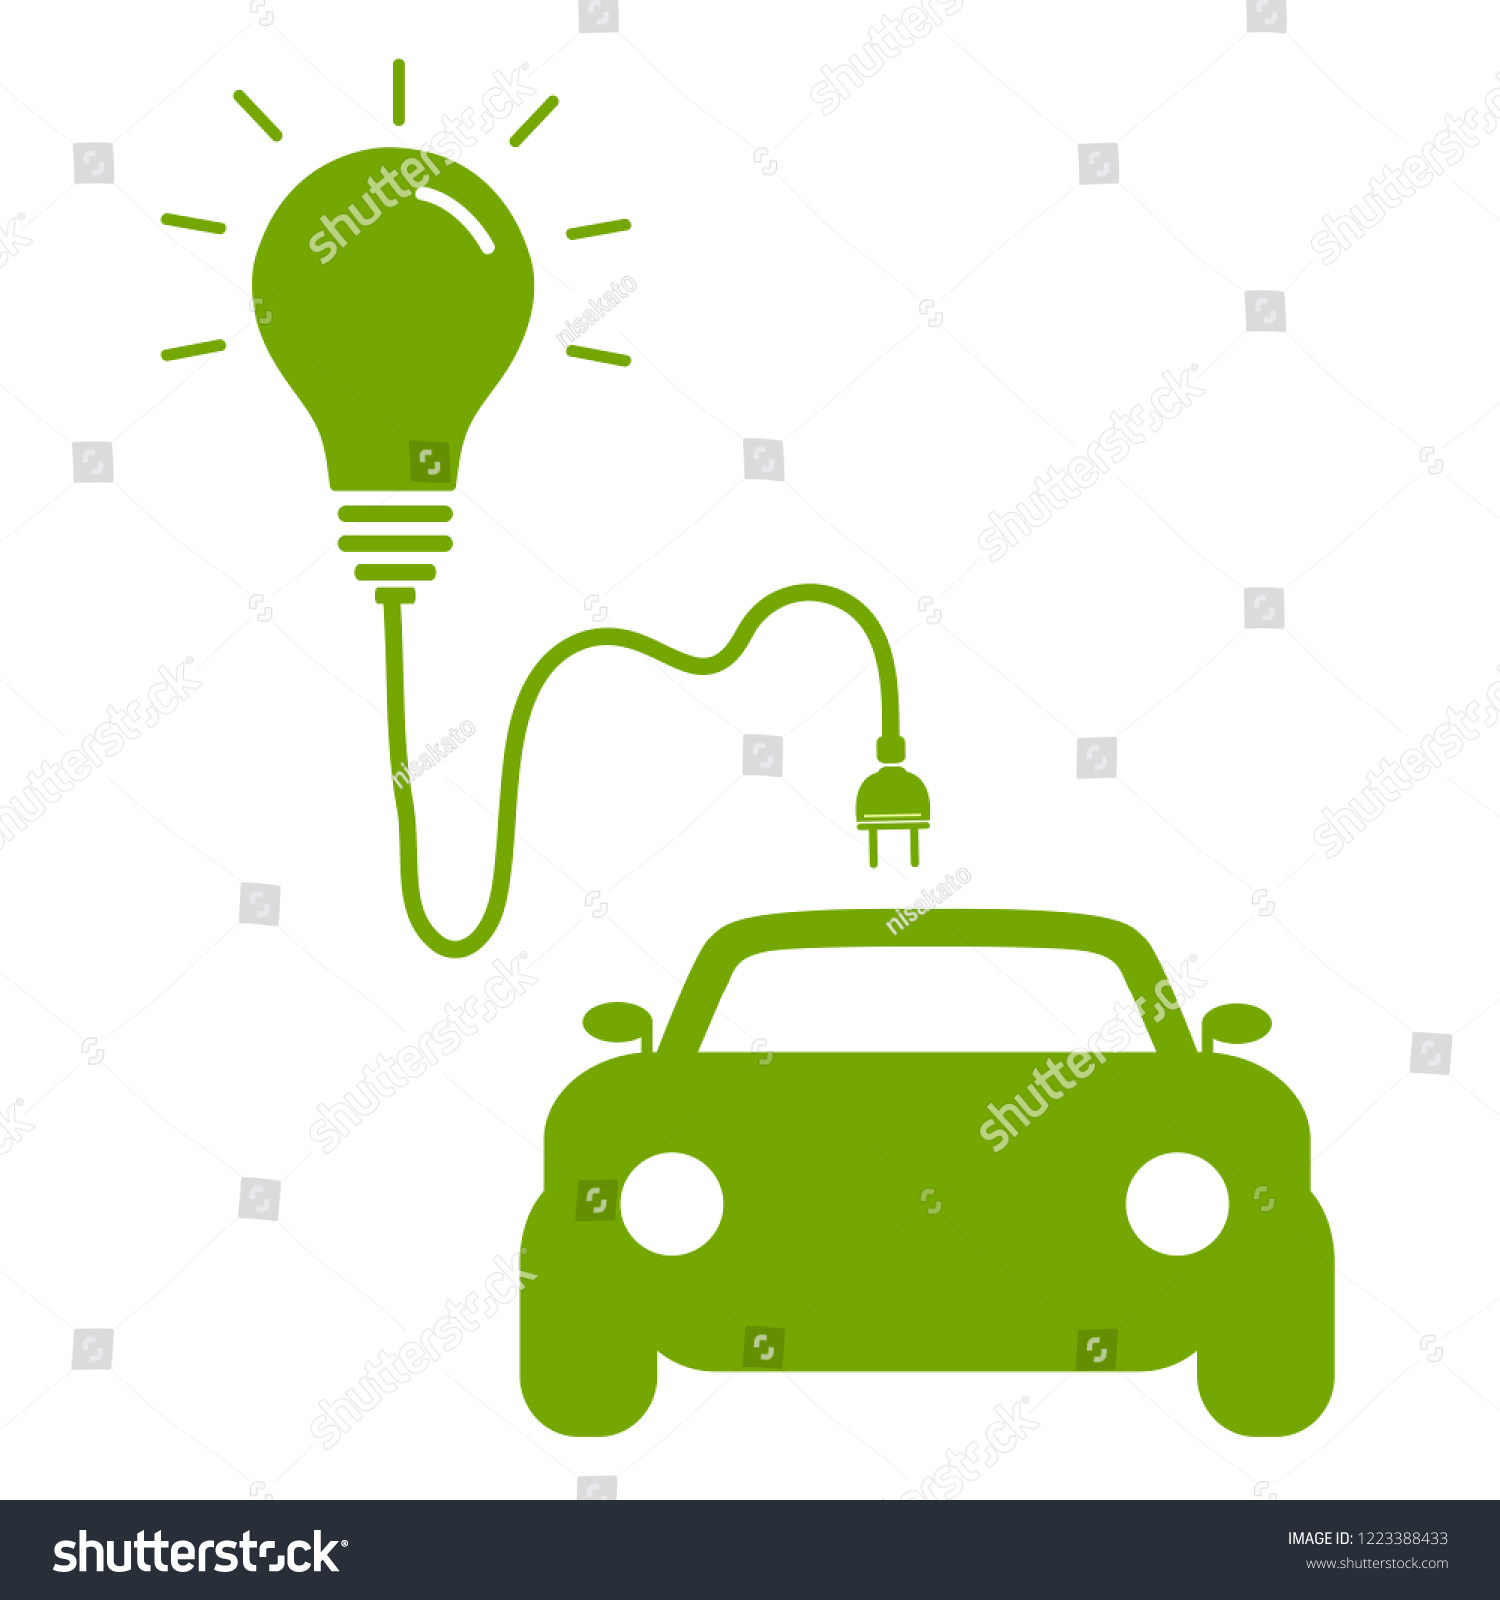 hight resolution of icon electric car and light bulb symbol hybrid car concept car or electric vehicle eco friendly vector image